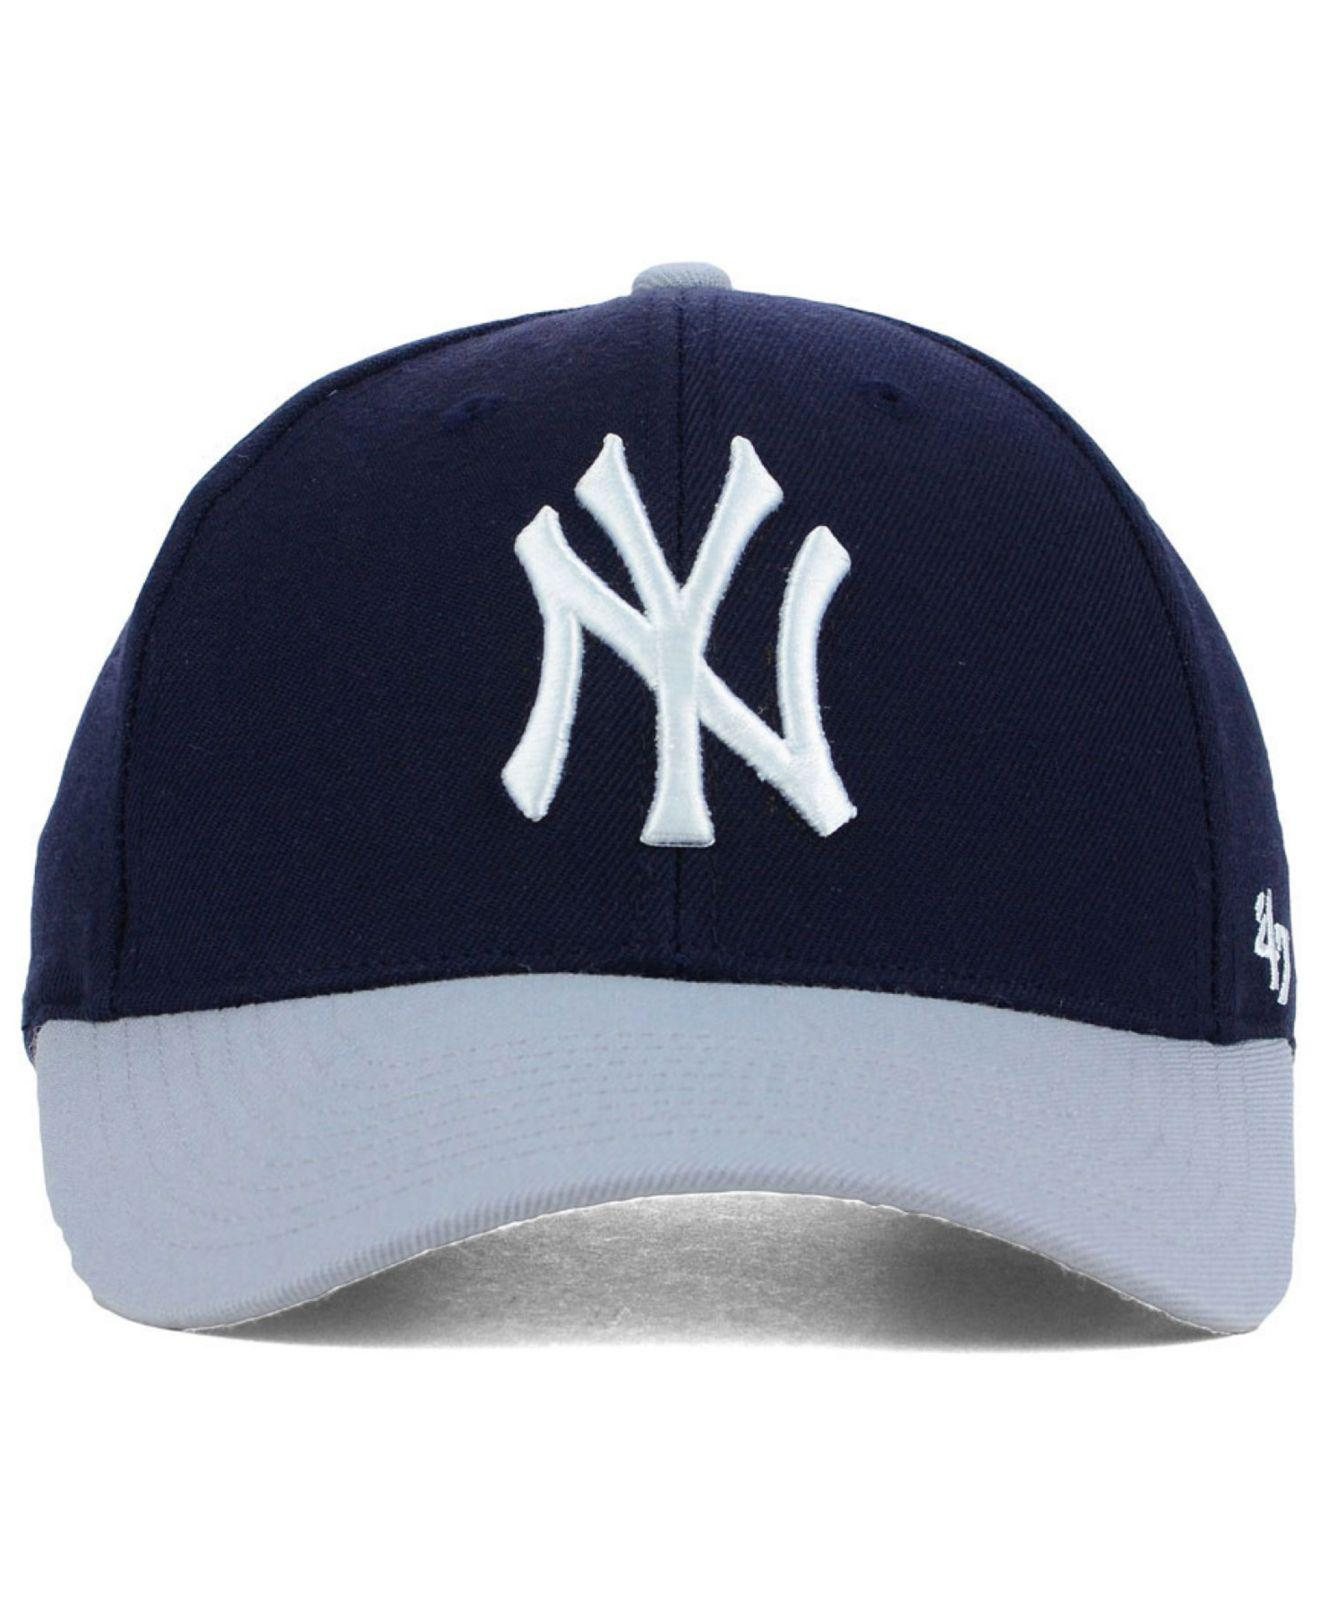 new product e1941 23888 ... coupon code for lyst 47 brand new york yankees mvp curved cap in blue  for men